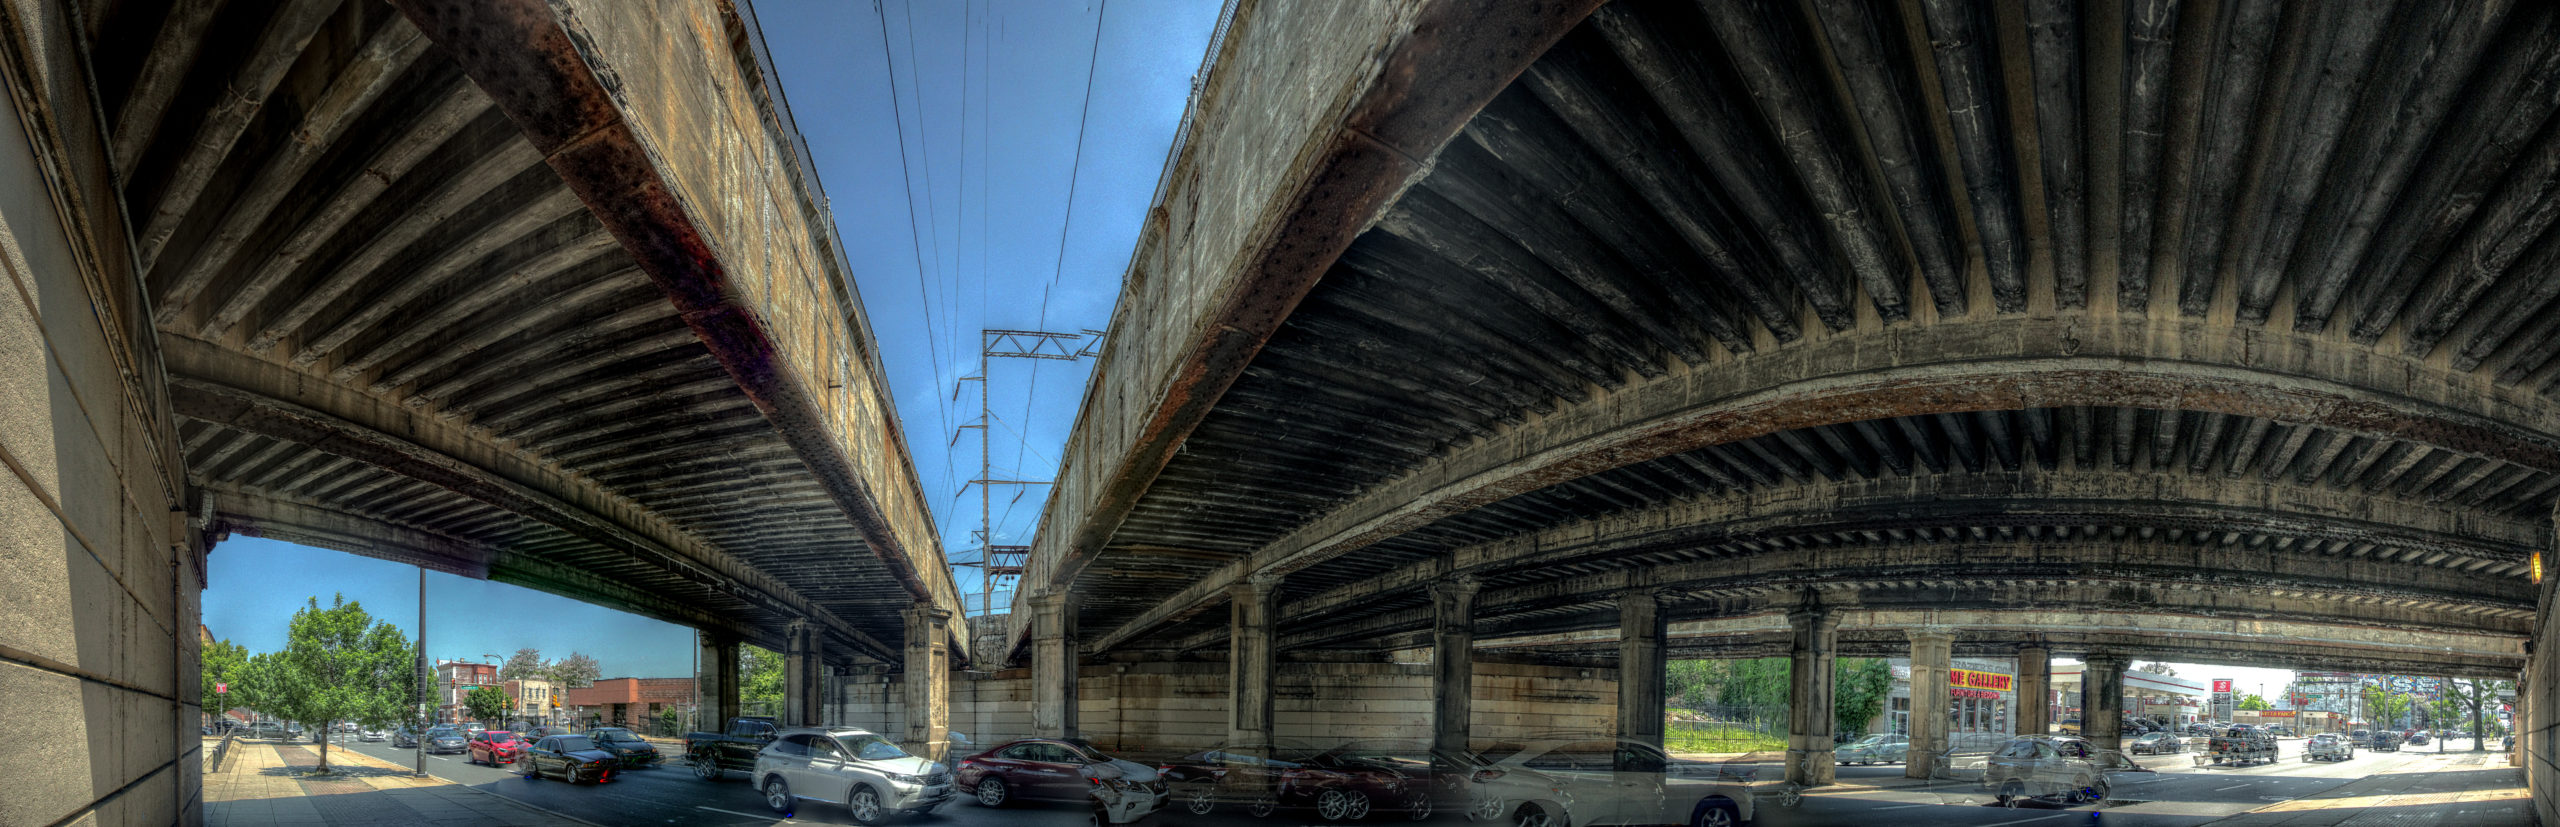 Pennsylvania Railroad Bridge 2988 N Broad Street Philadelphia, PA Copyright 2019, Bob Bruhin. All rights reserved.